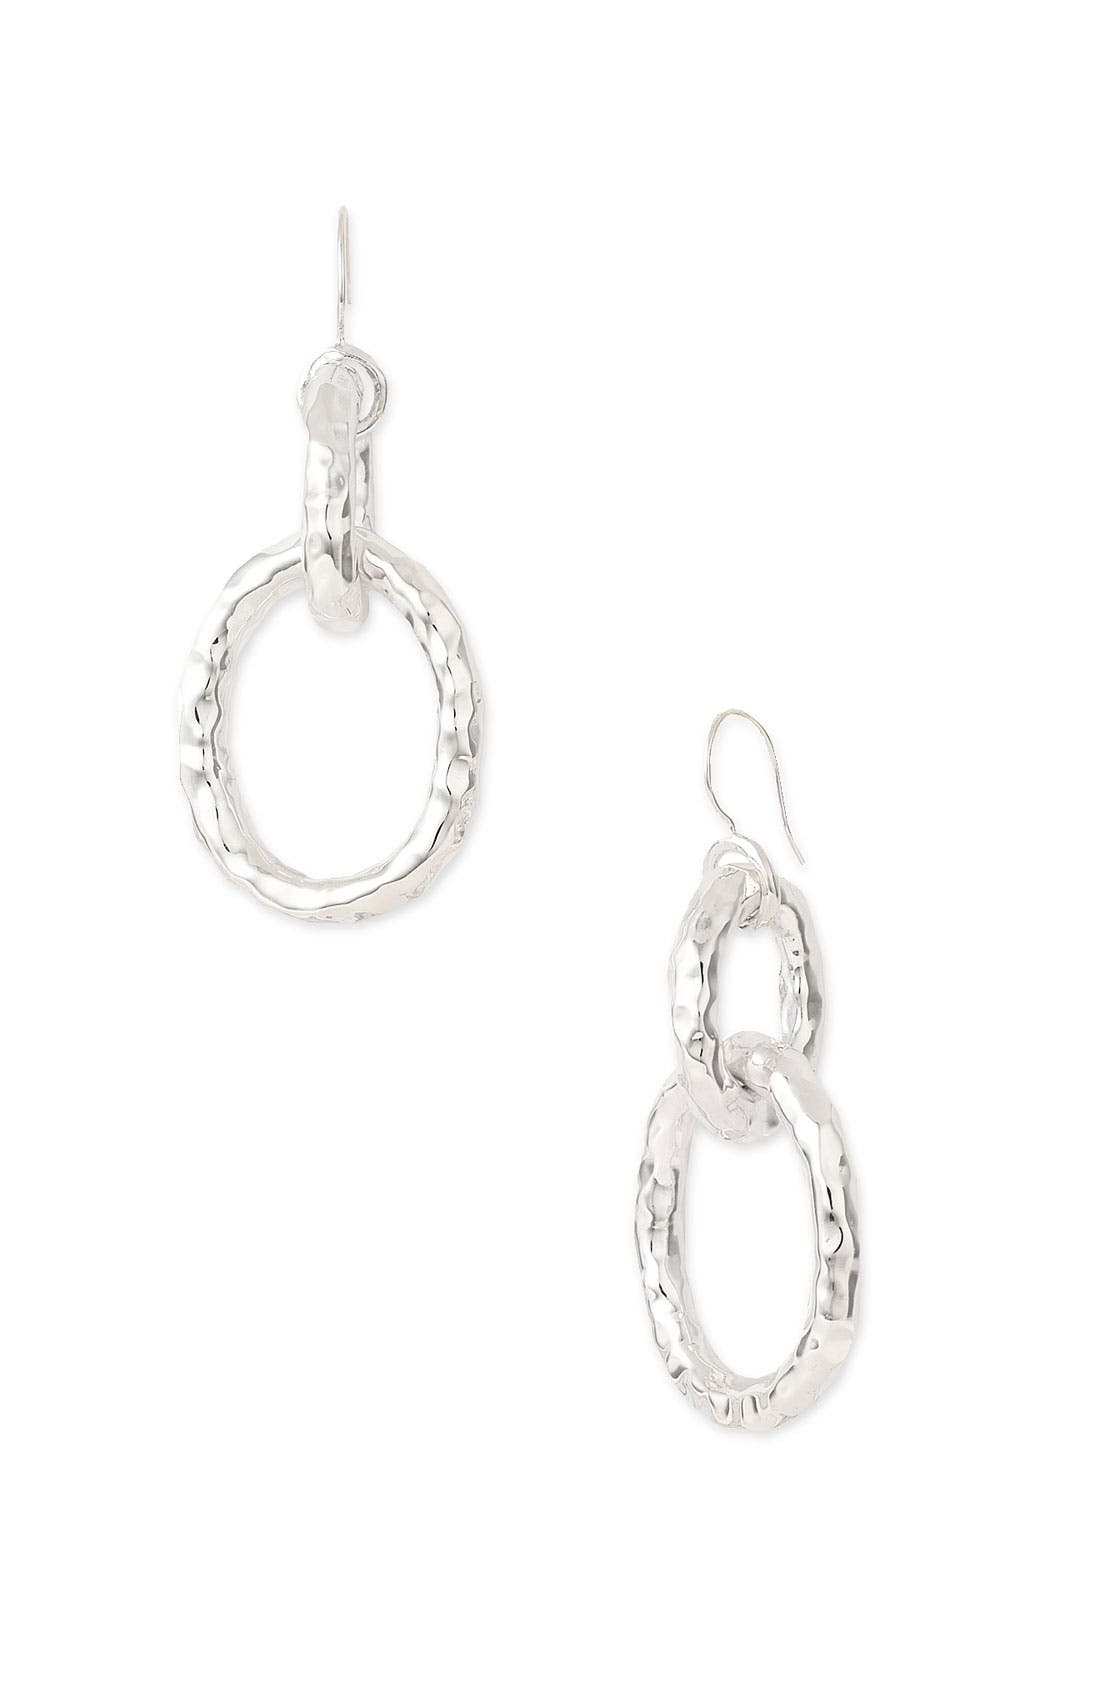 Main Image - Ippolita 'Glamazon' Hammered Chain Link Earrings